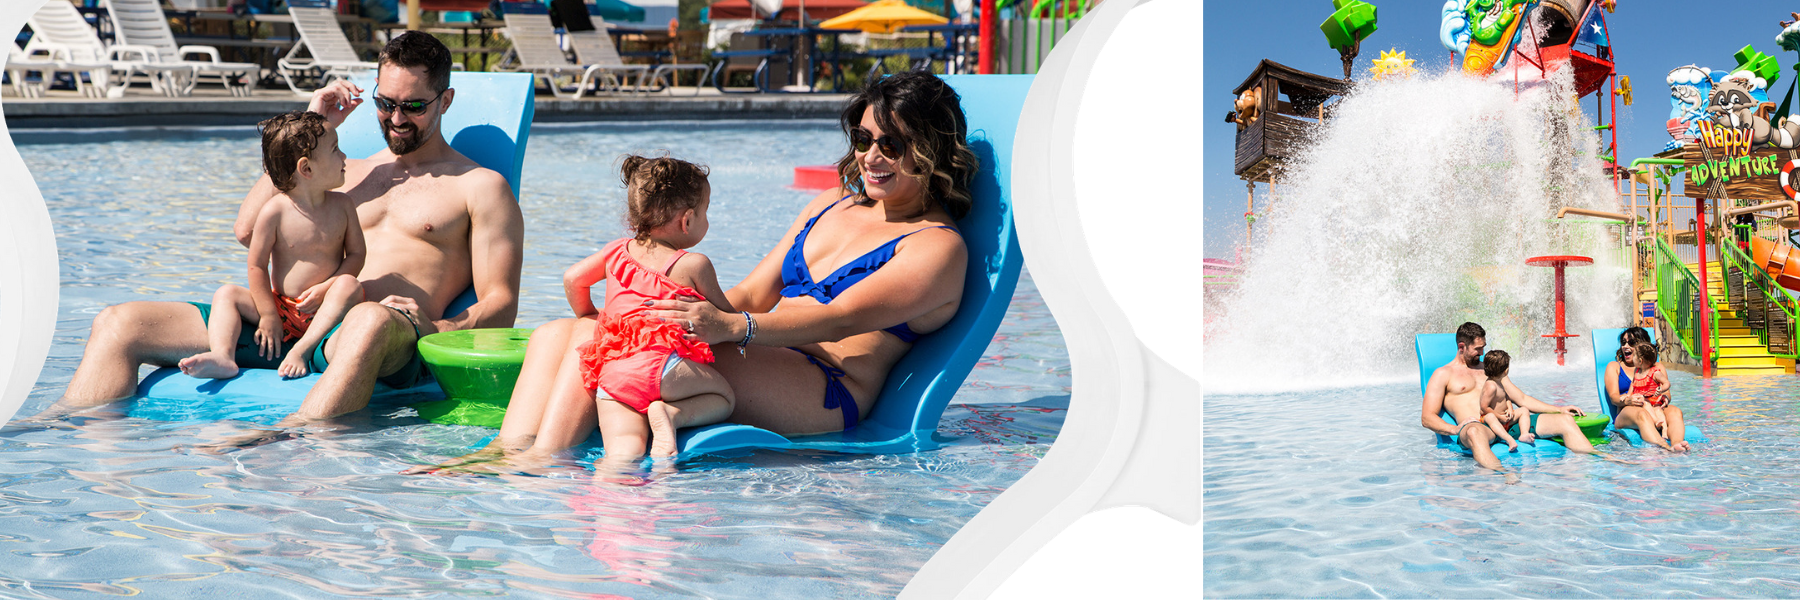 Ledge Lounger Signature Chaise Pair shown in action at the texas waterpark